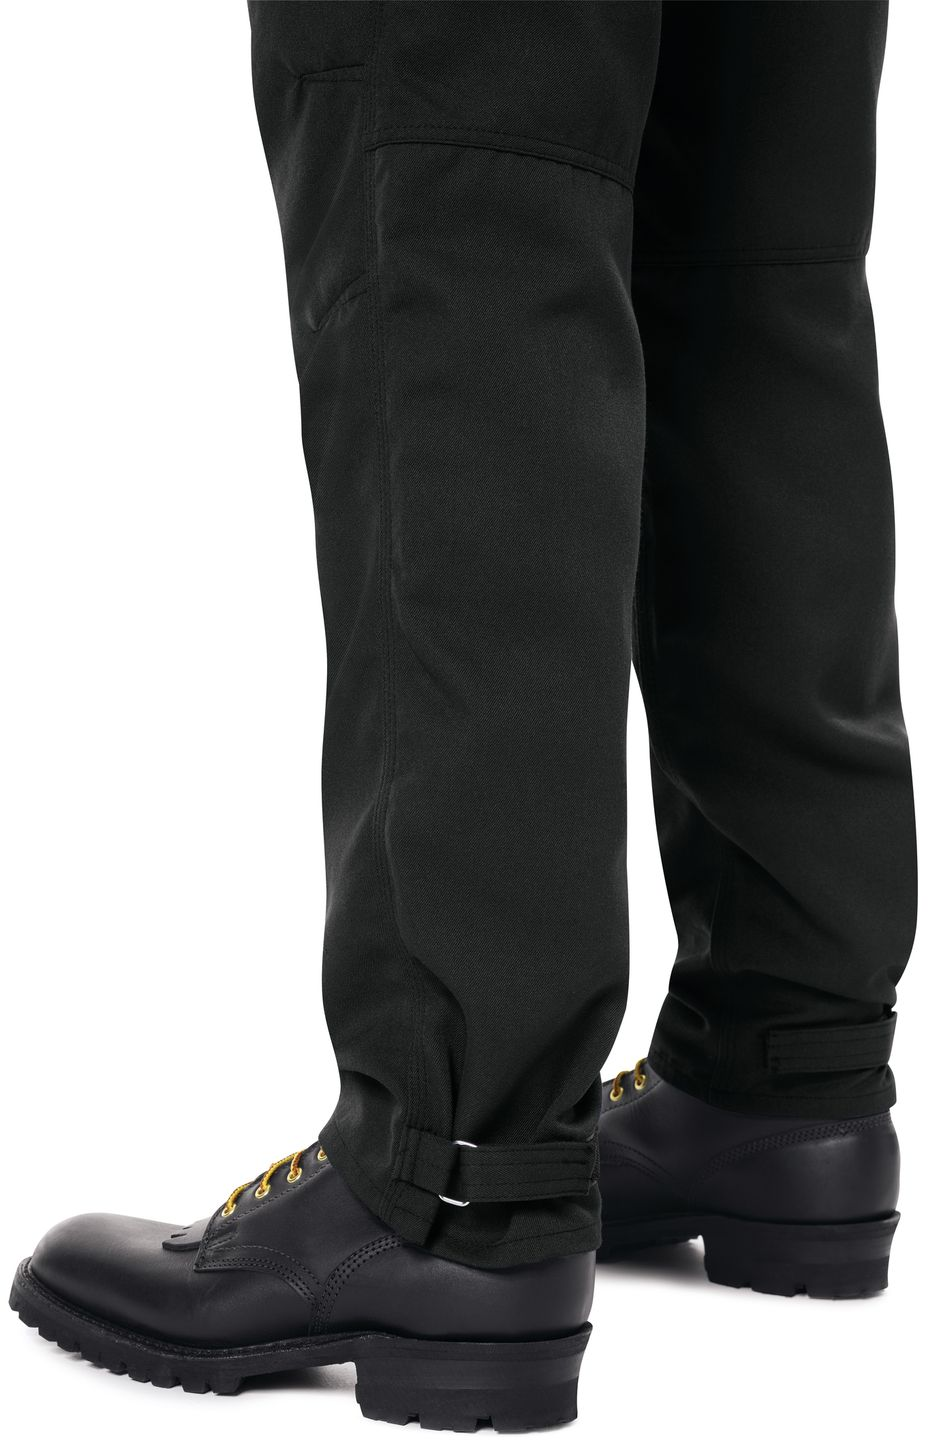 Workrite FR Pants FP62 Wildland Dual-Compliant Tactical Midnight Navy Black Example